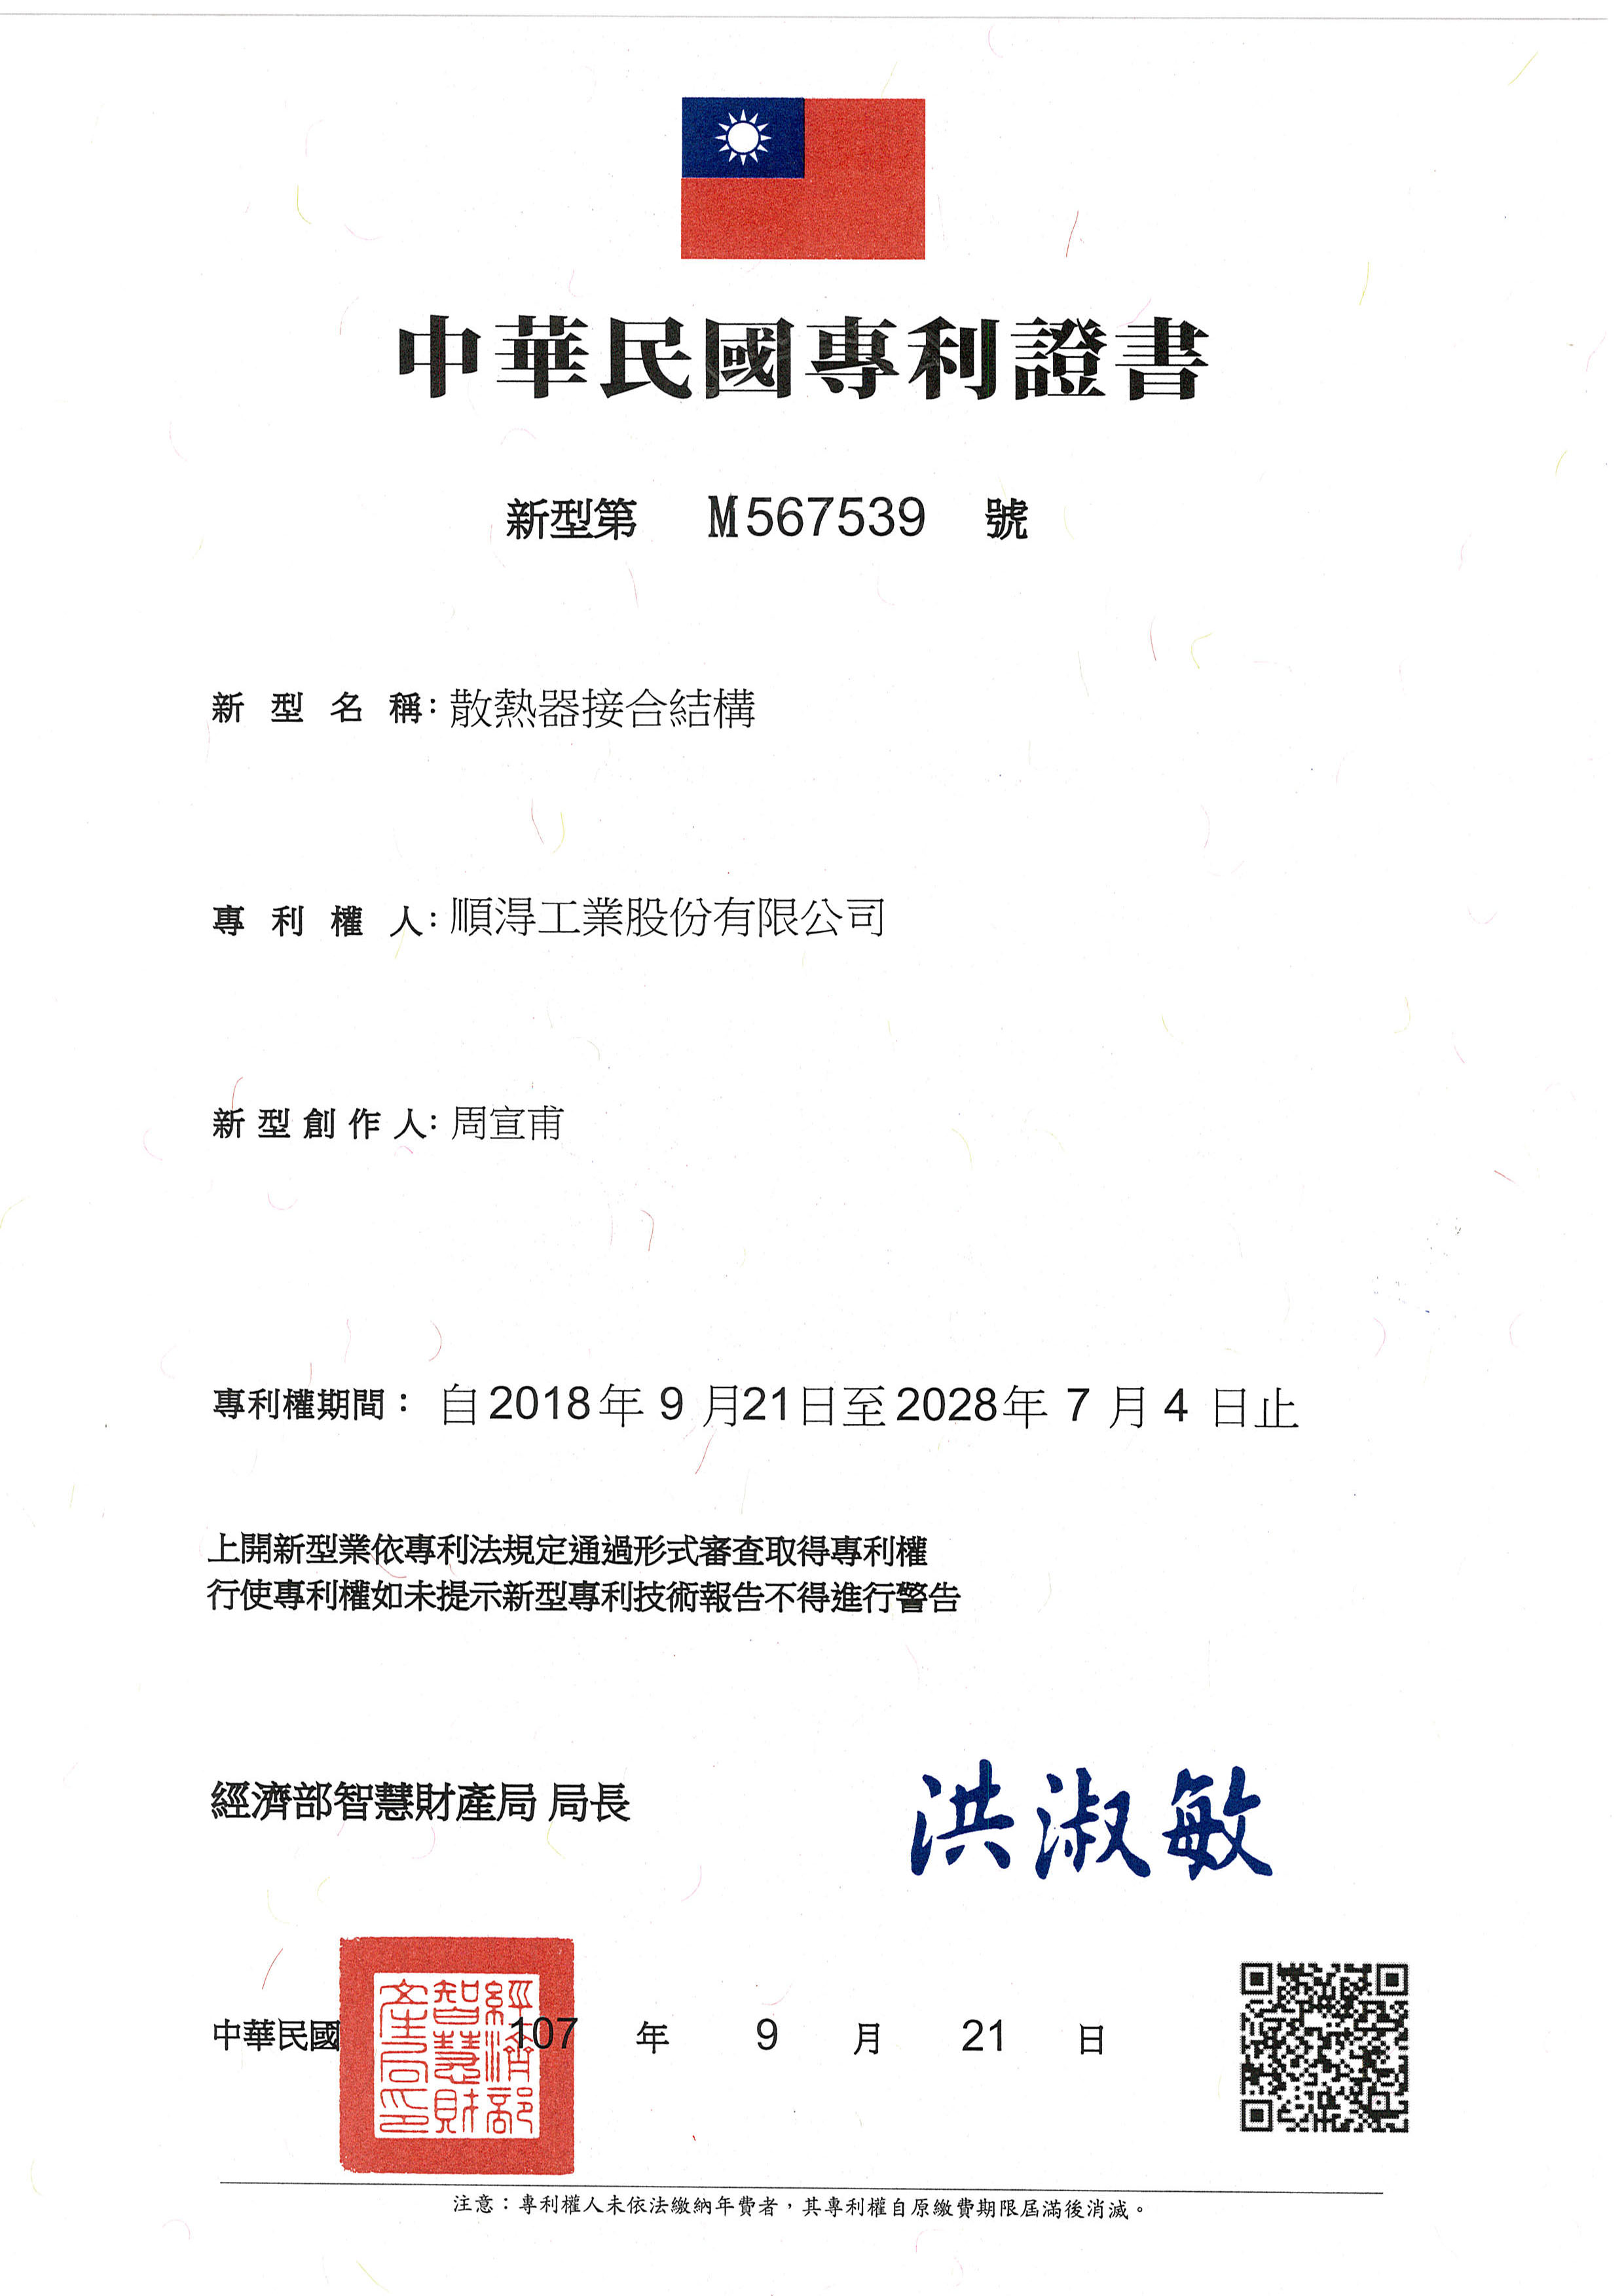 New Patent Release Shunteh News And Events Shunteh Machinery Mfg